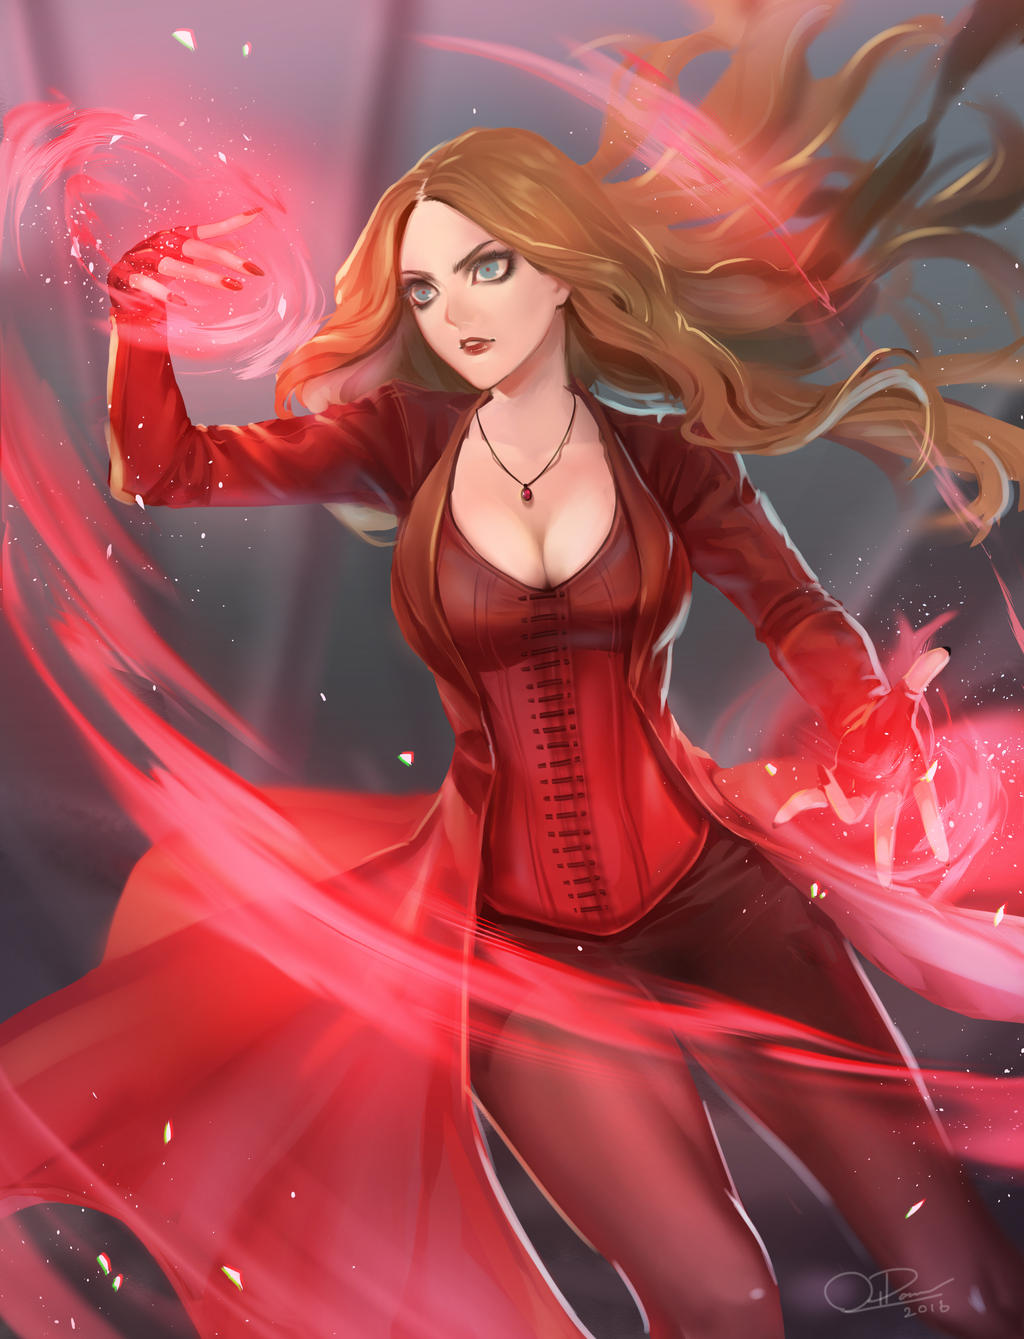 Civil War: Scarlet Witch by o-pan on DeviantArt